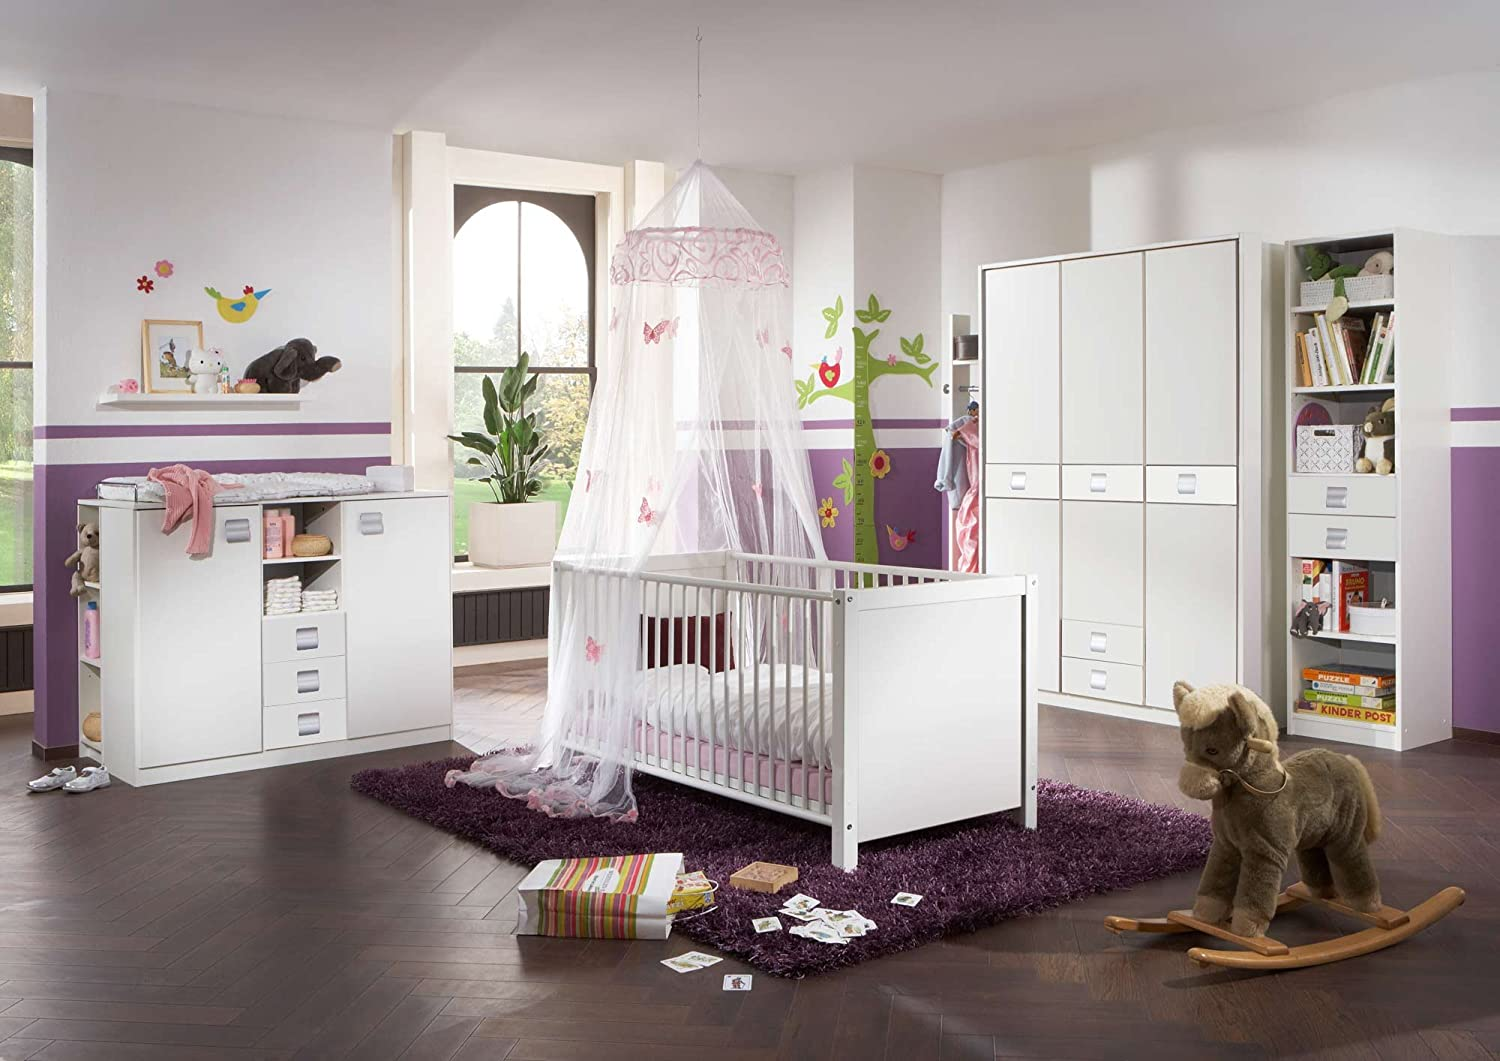 babyzimmer kinderzimmer komplett set babym bel babybett. Black Bedroom Furniture Sets. Home Design Ideas